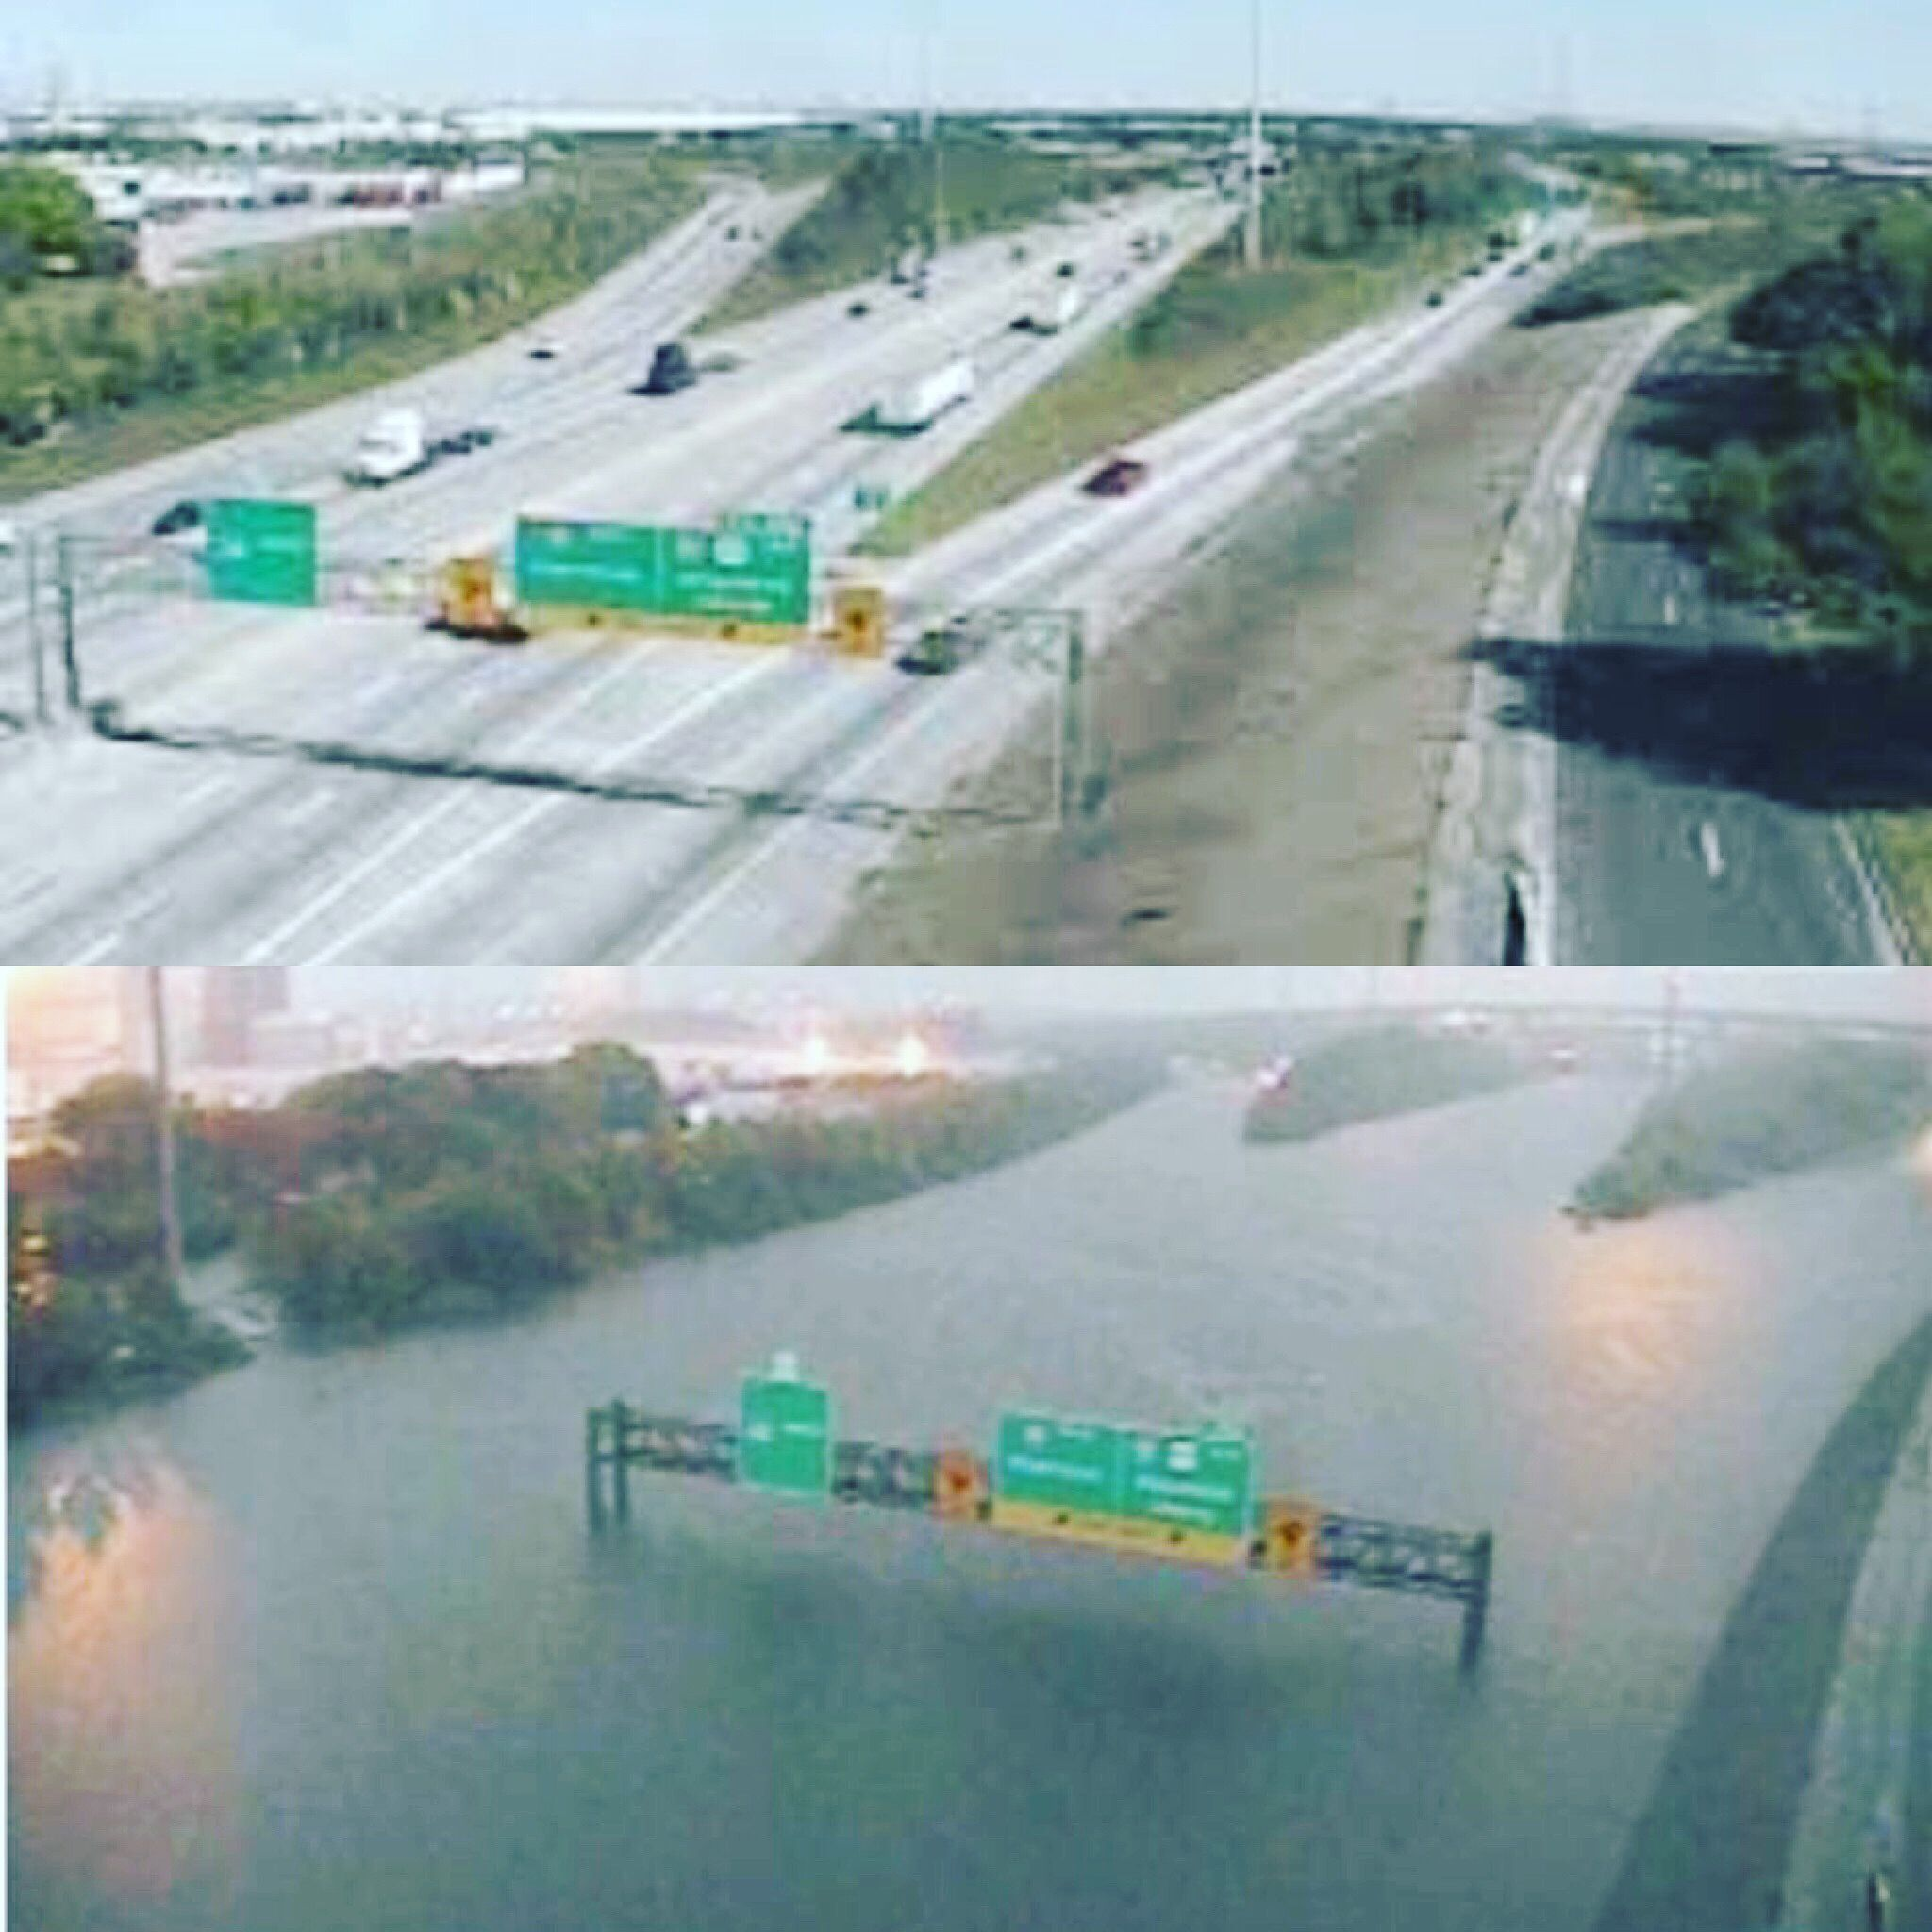 Houston S I 610 Before And After The Flood Waters Godblesstexas Hurricaneharvey Houston Flooding Texas Hurricane Texas City Explosion